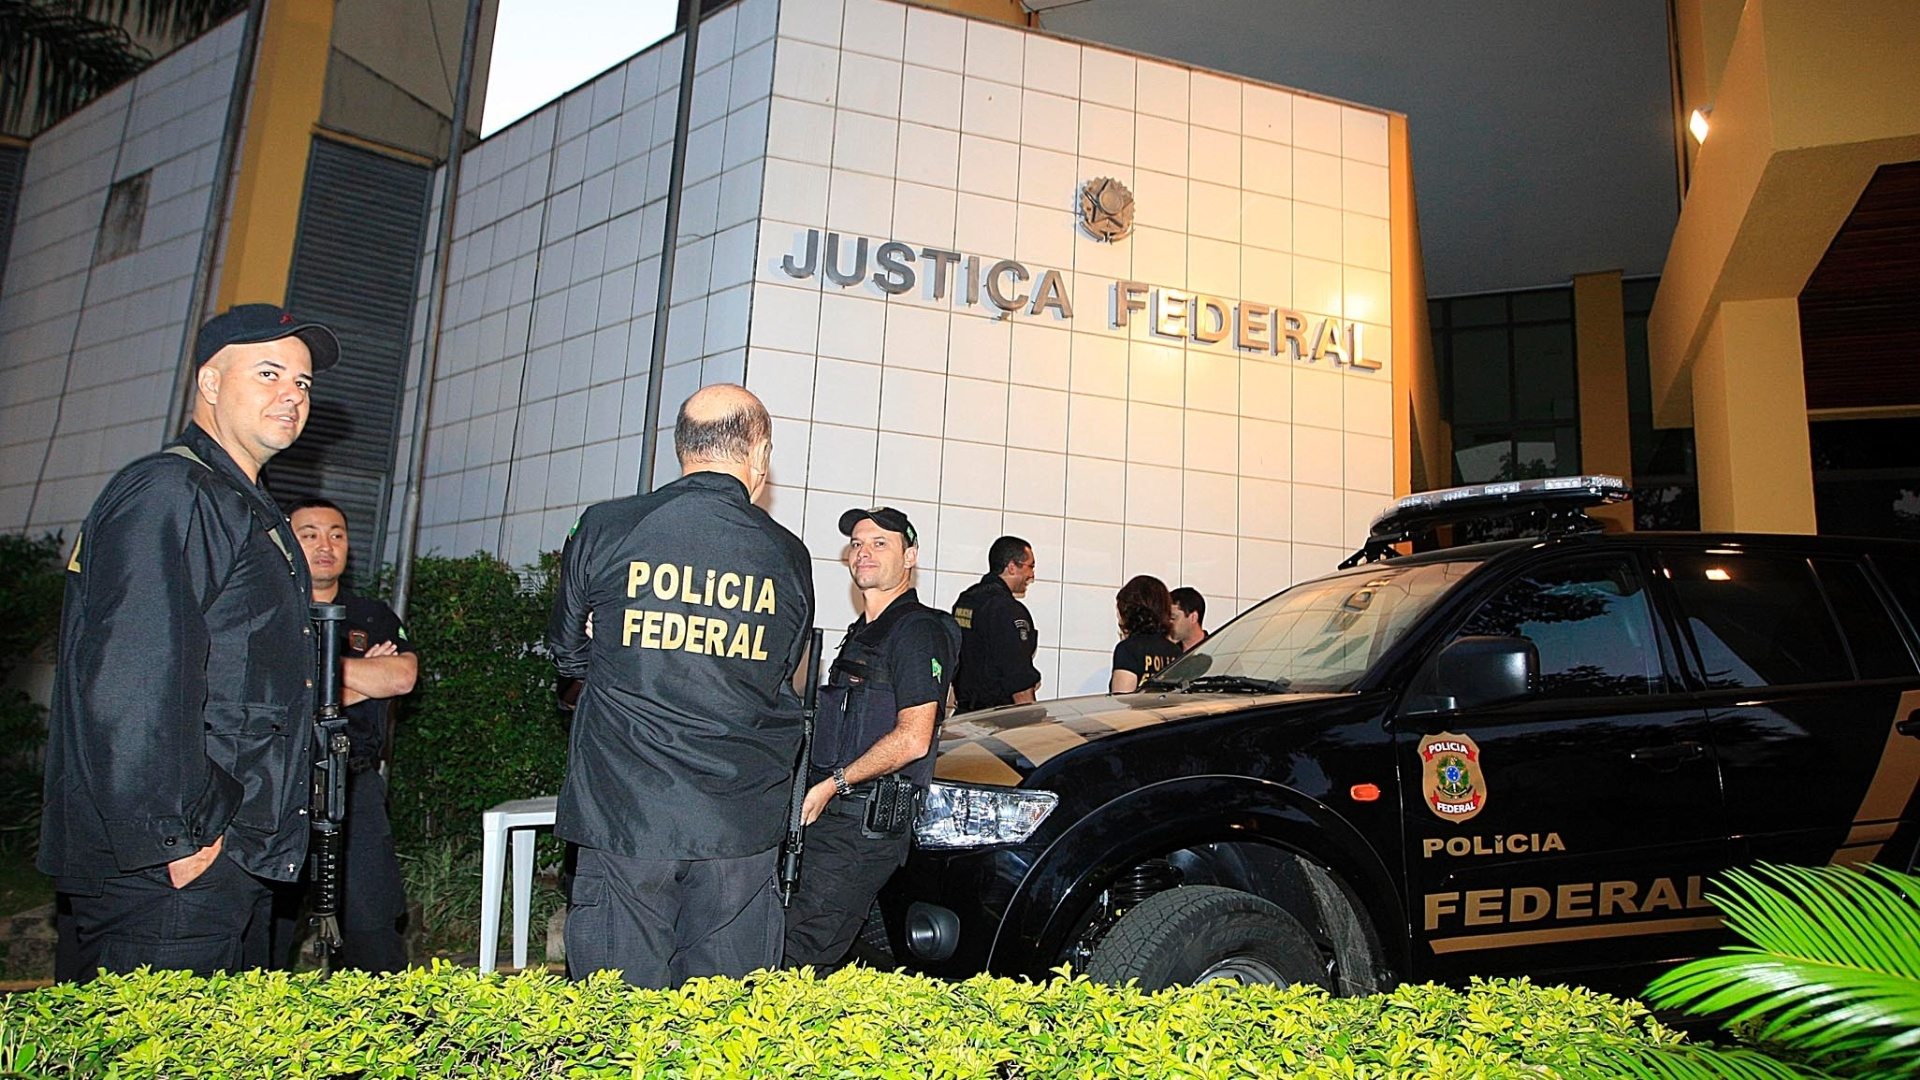 24.jul.2012 - Policiais trabalham em frente ao prdio da Justia Federal de Goinia, nesta tera-feira (24). Comeam hoje no local as audincias de instruo e julgamento de Carlinhos Cachoeira e outros sete rus. Sero dois dias de depoimentos